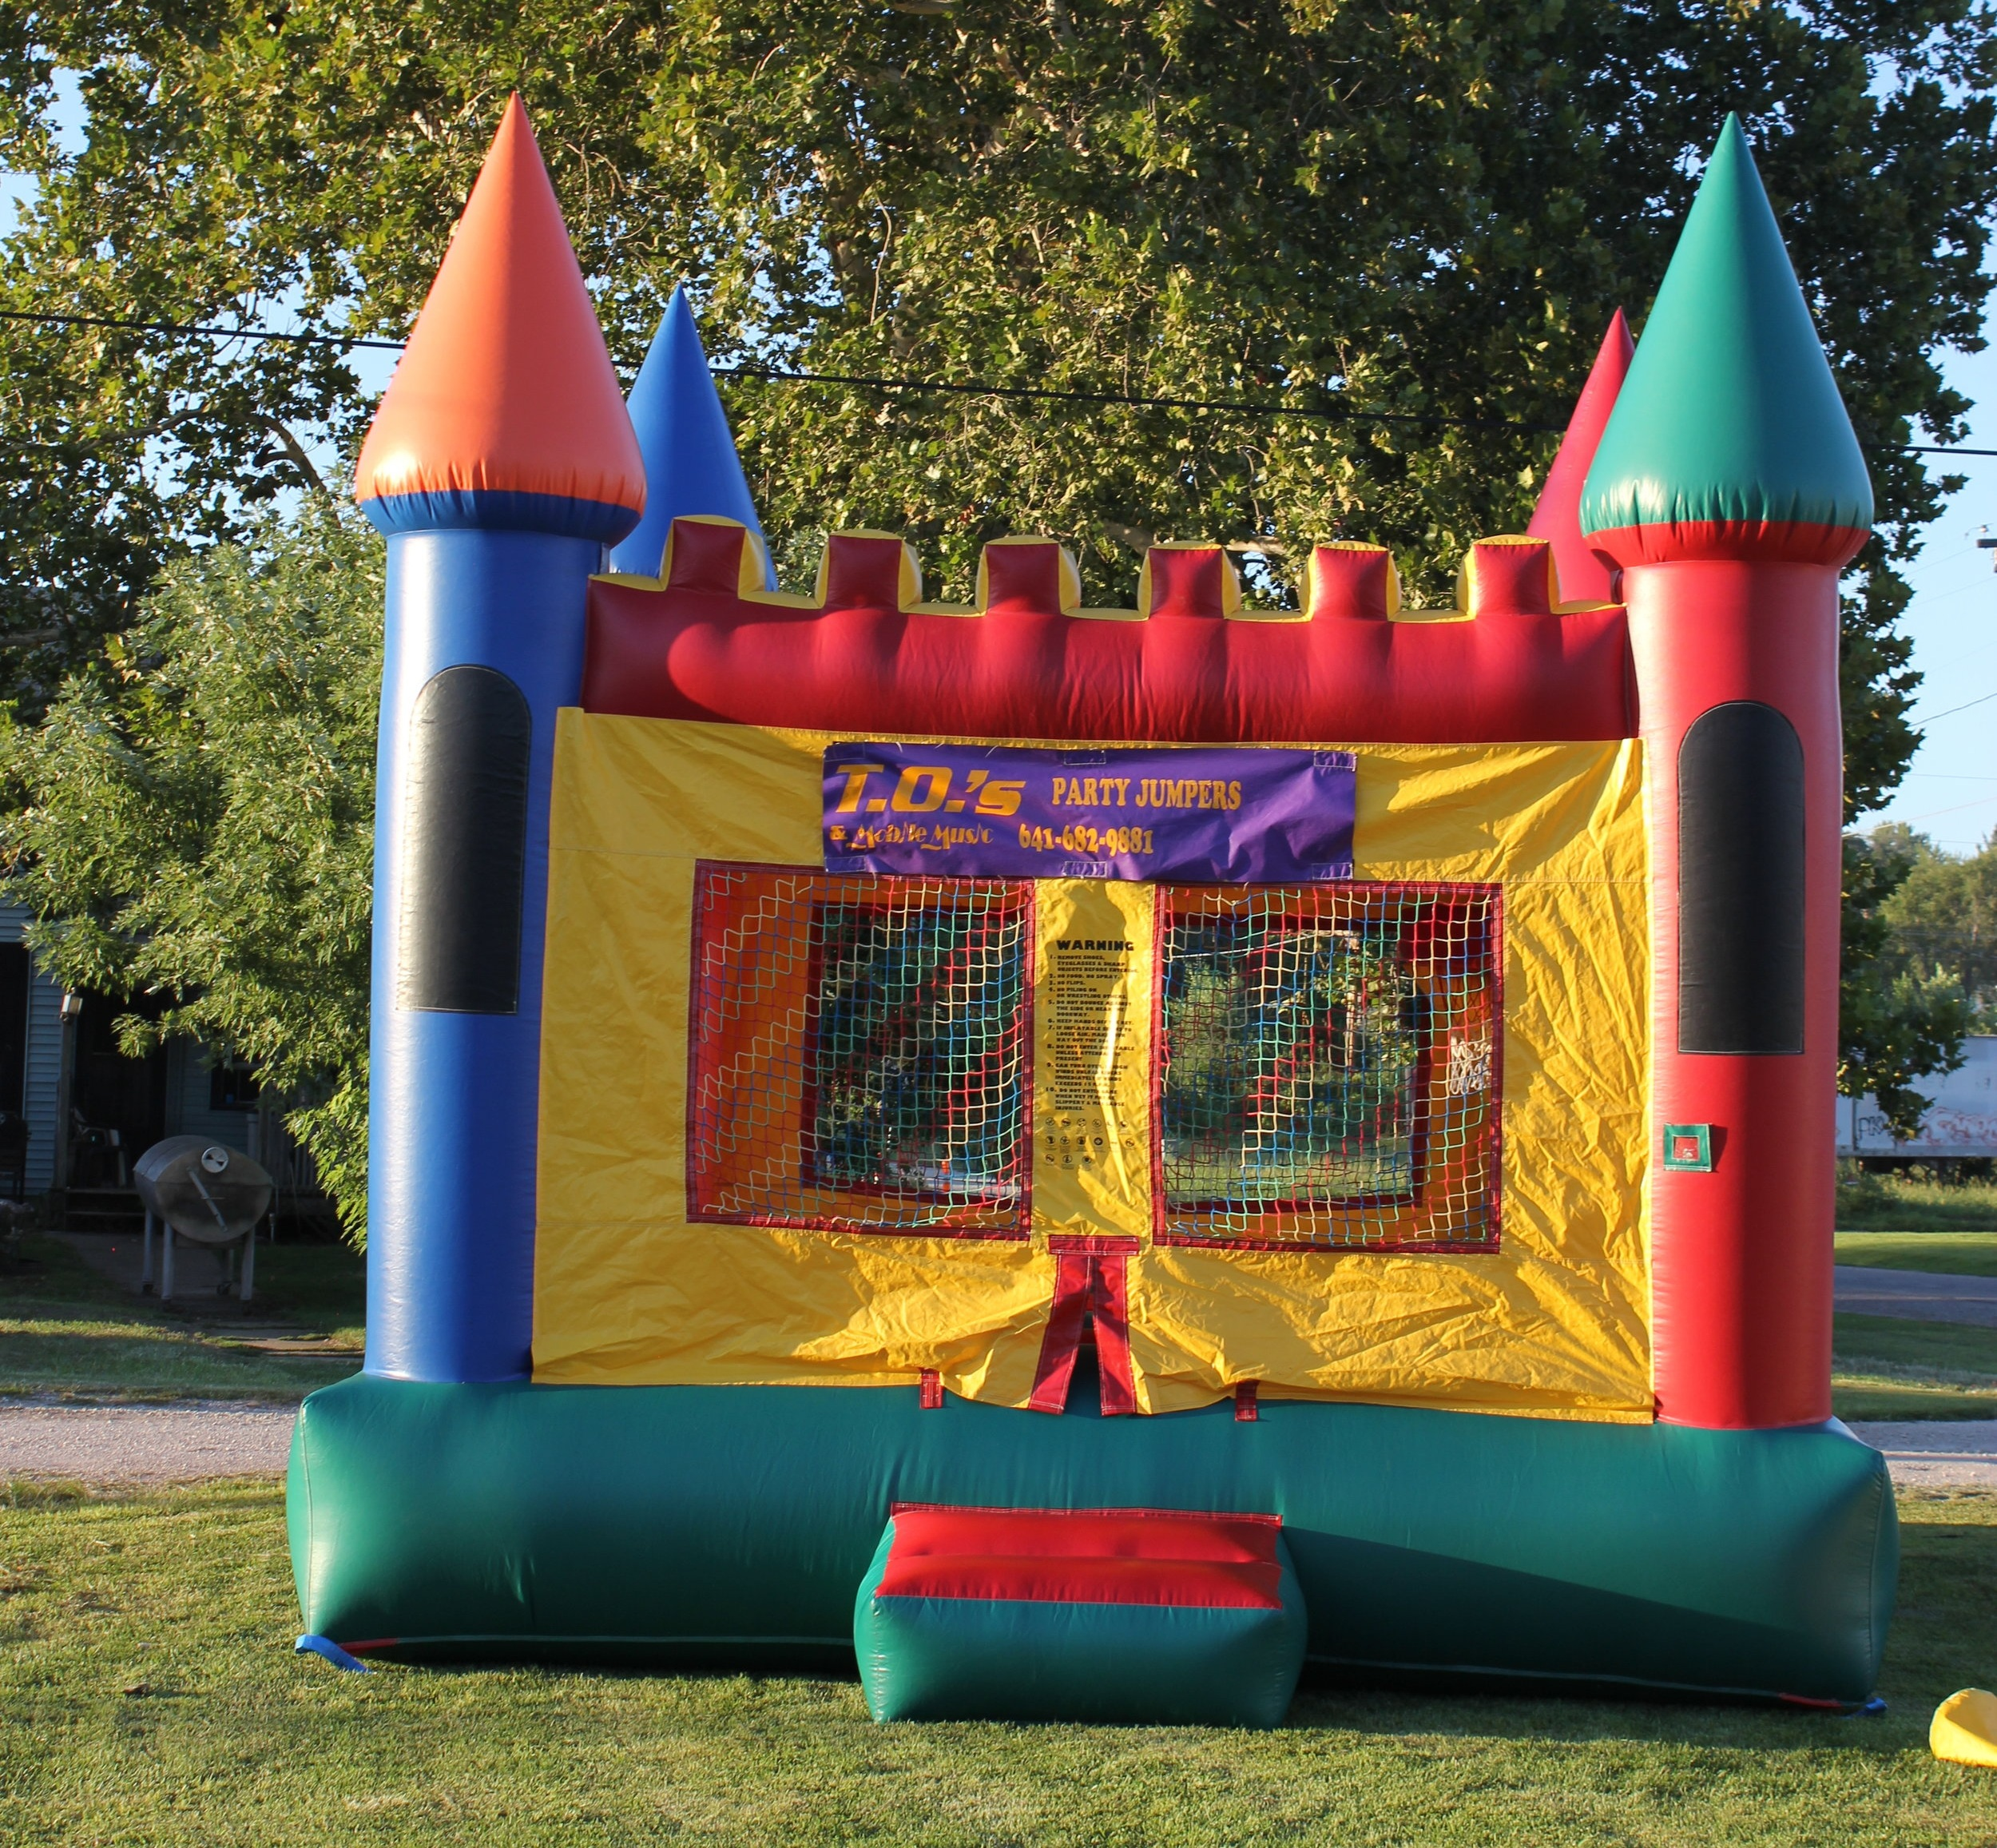 LargeCastle$140.00 + tax - We have multiple castles, color scheme may vary slightly.